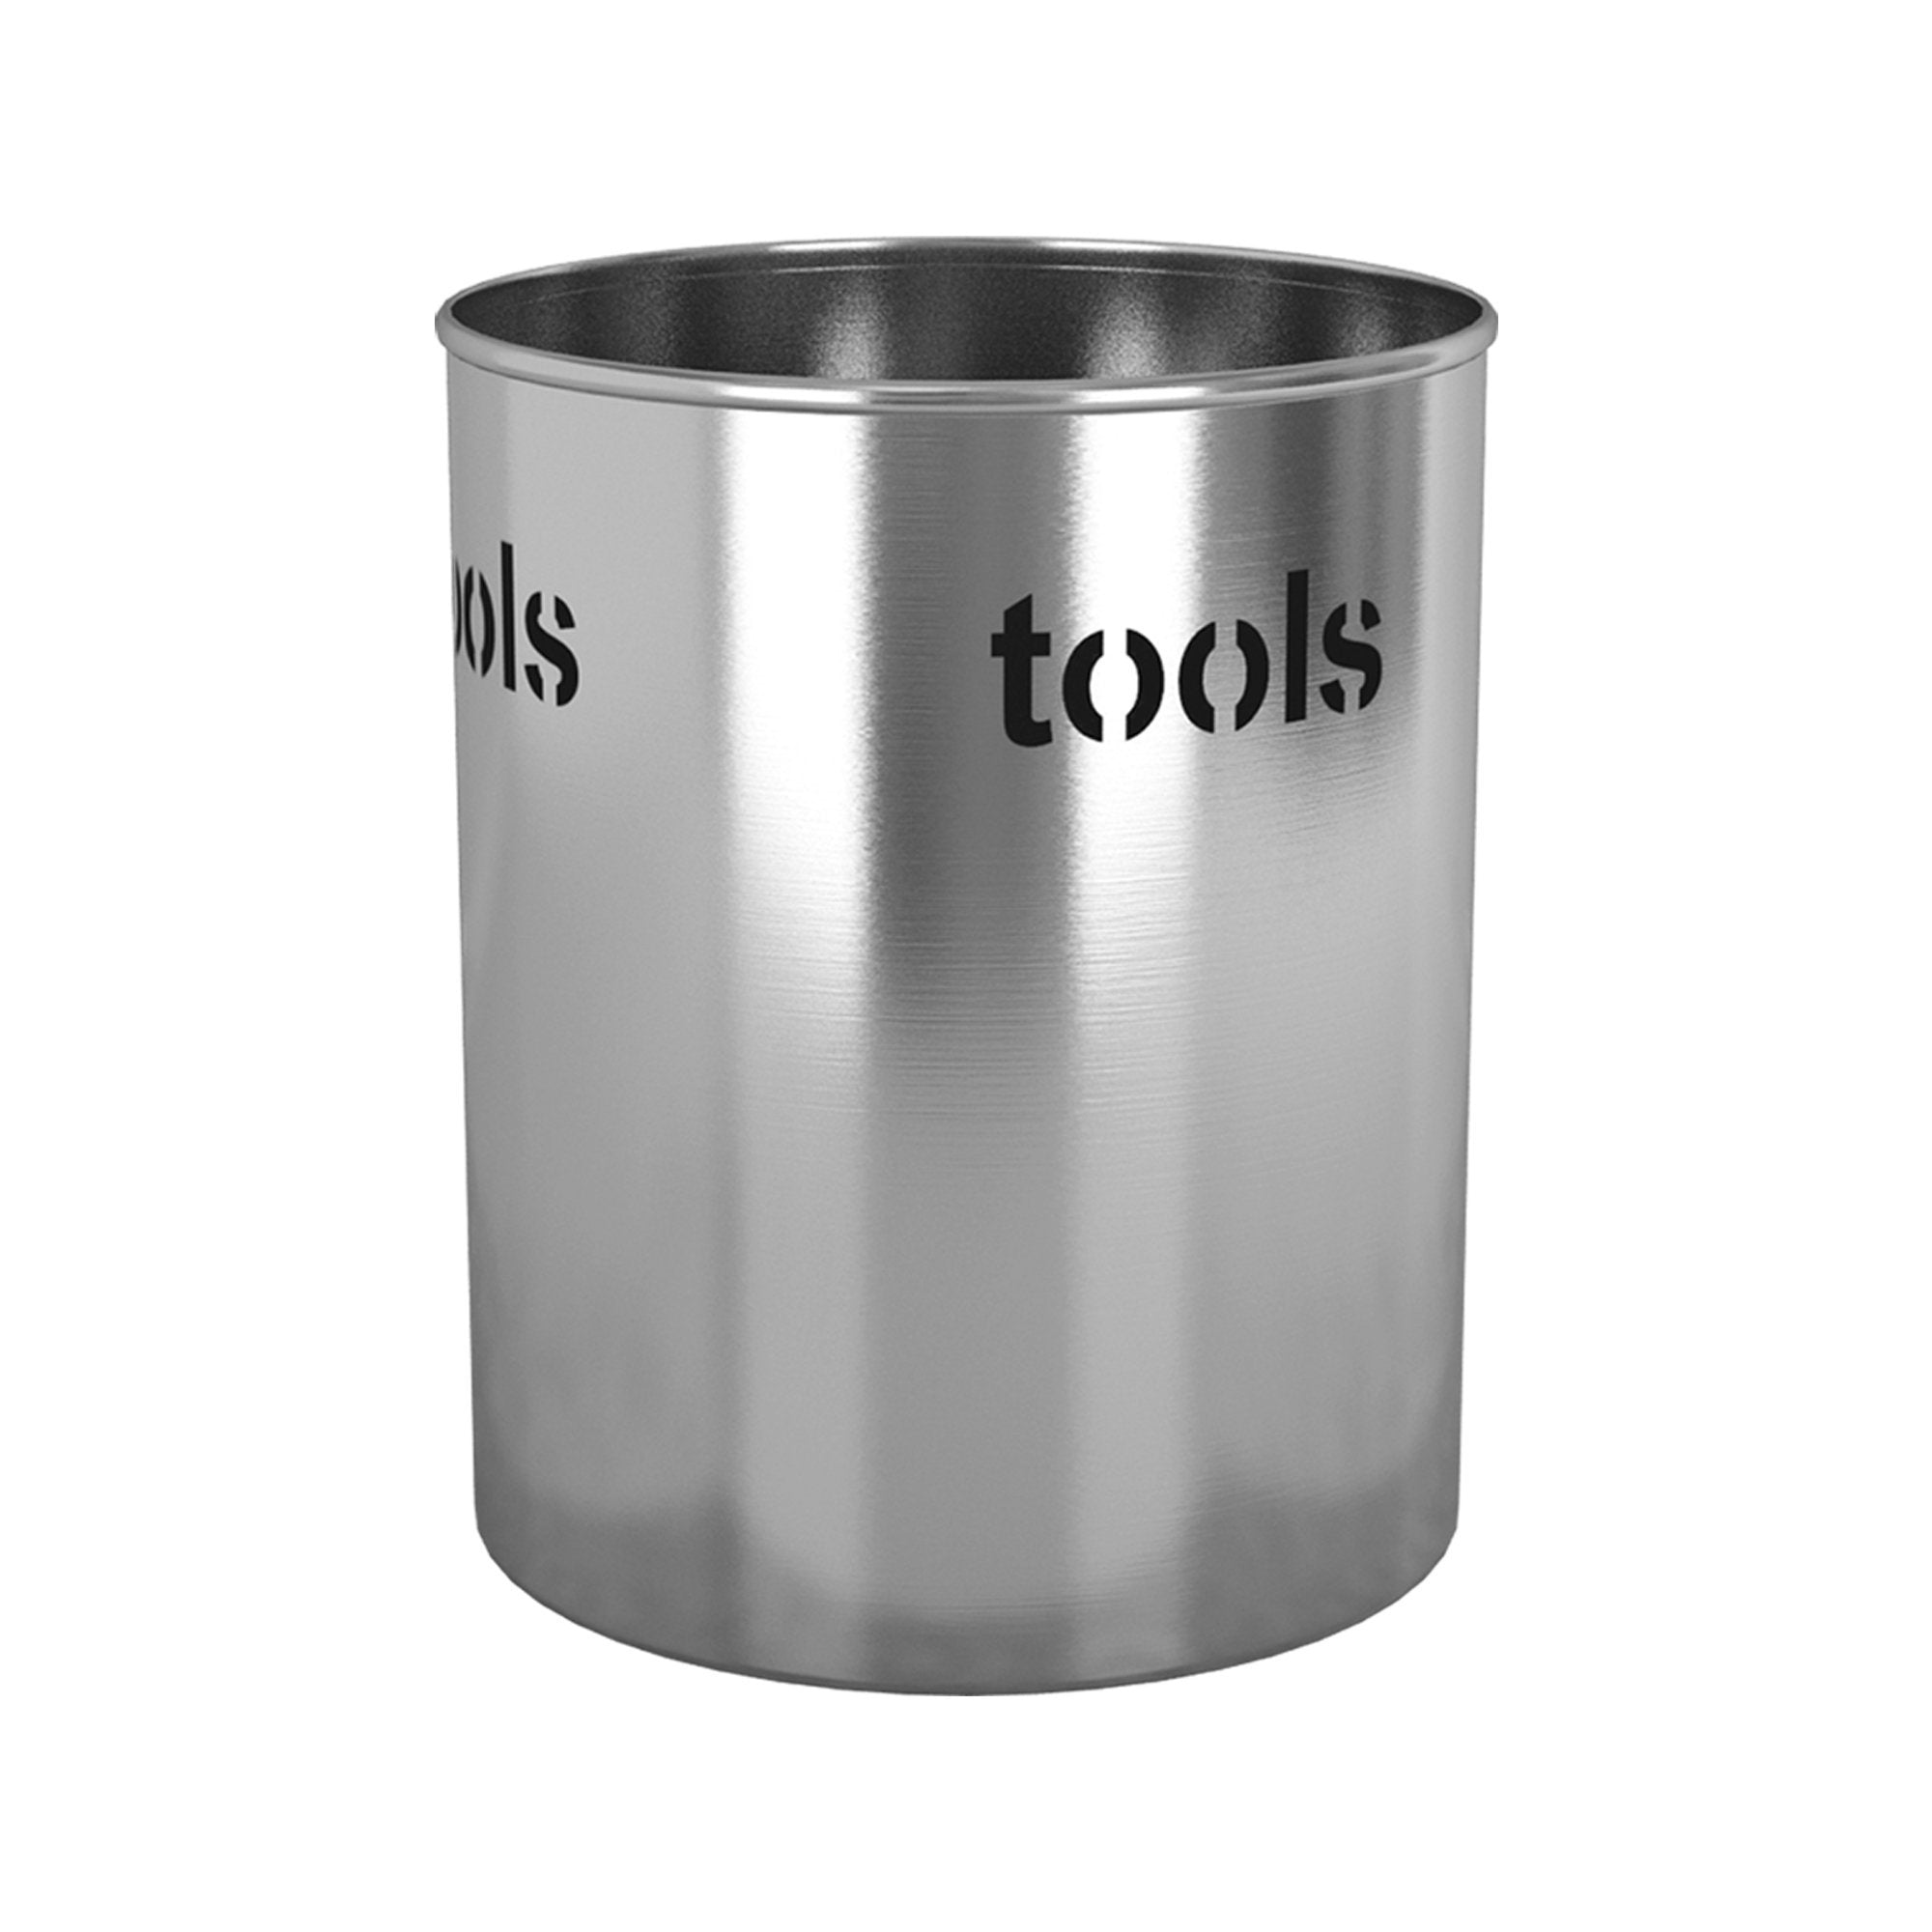 nu steel TG-UH-15 Utensils Holder, 7.5'' H x 7.5'' W x 7.5'' D, Brushed